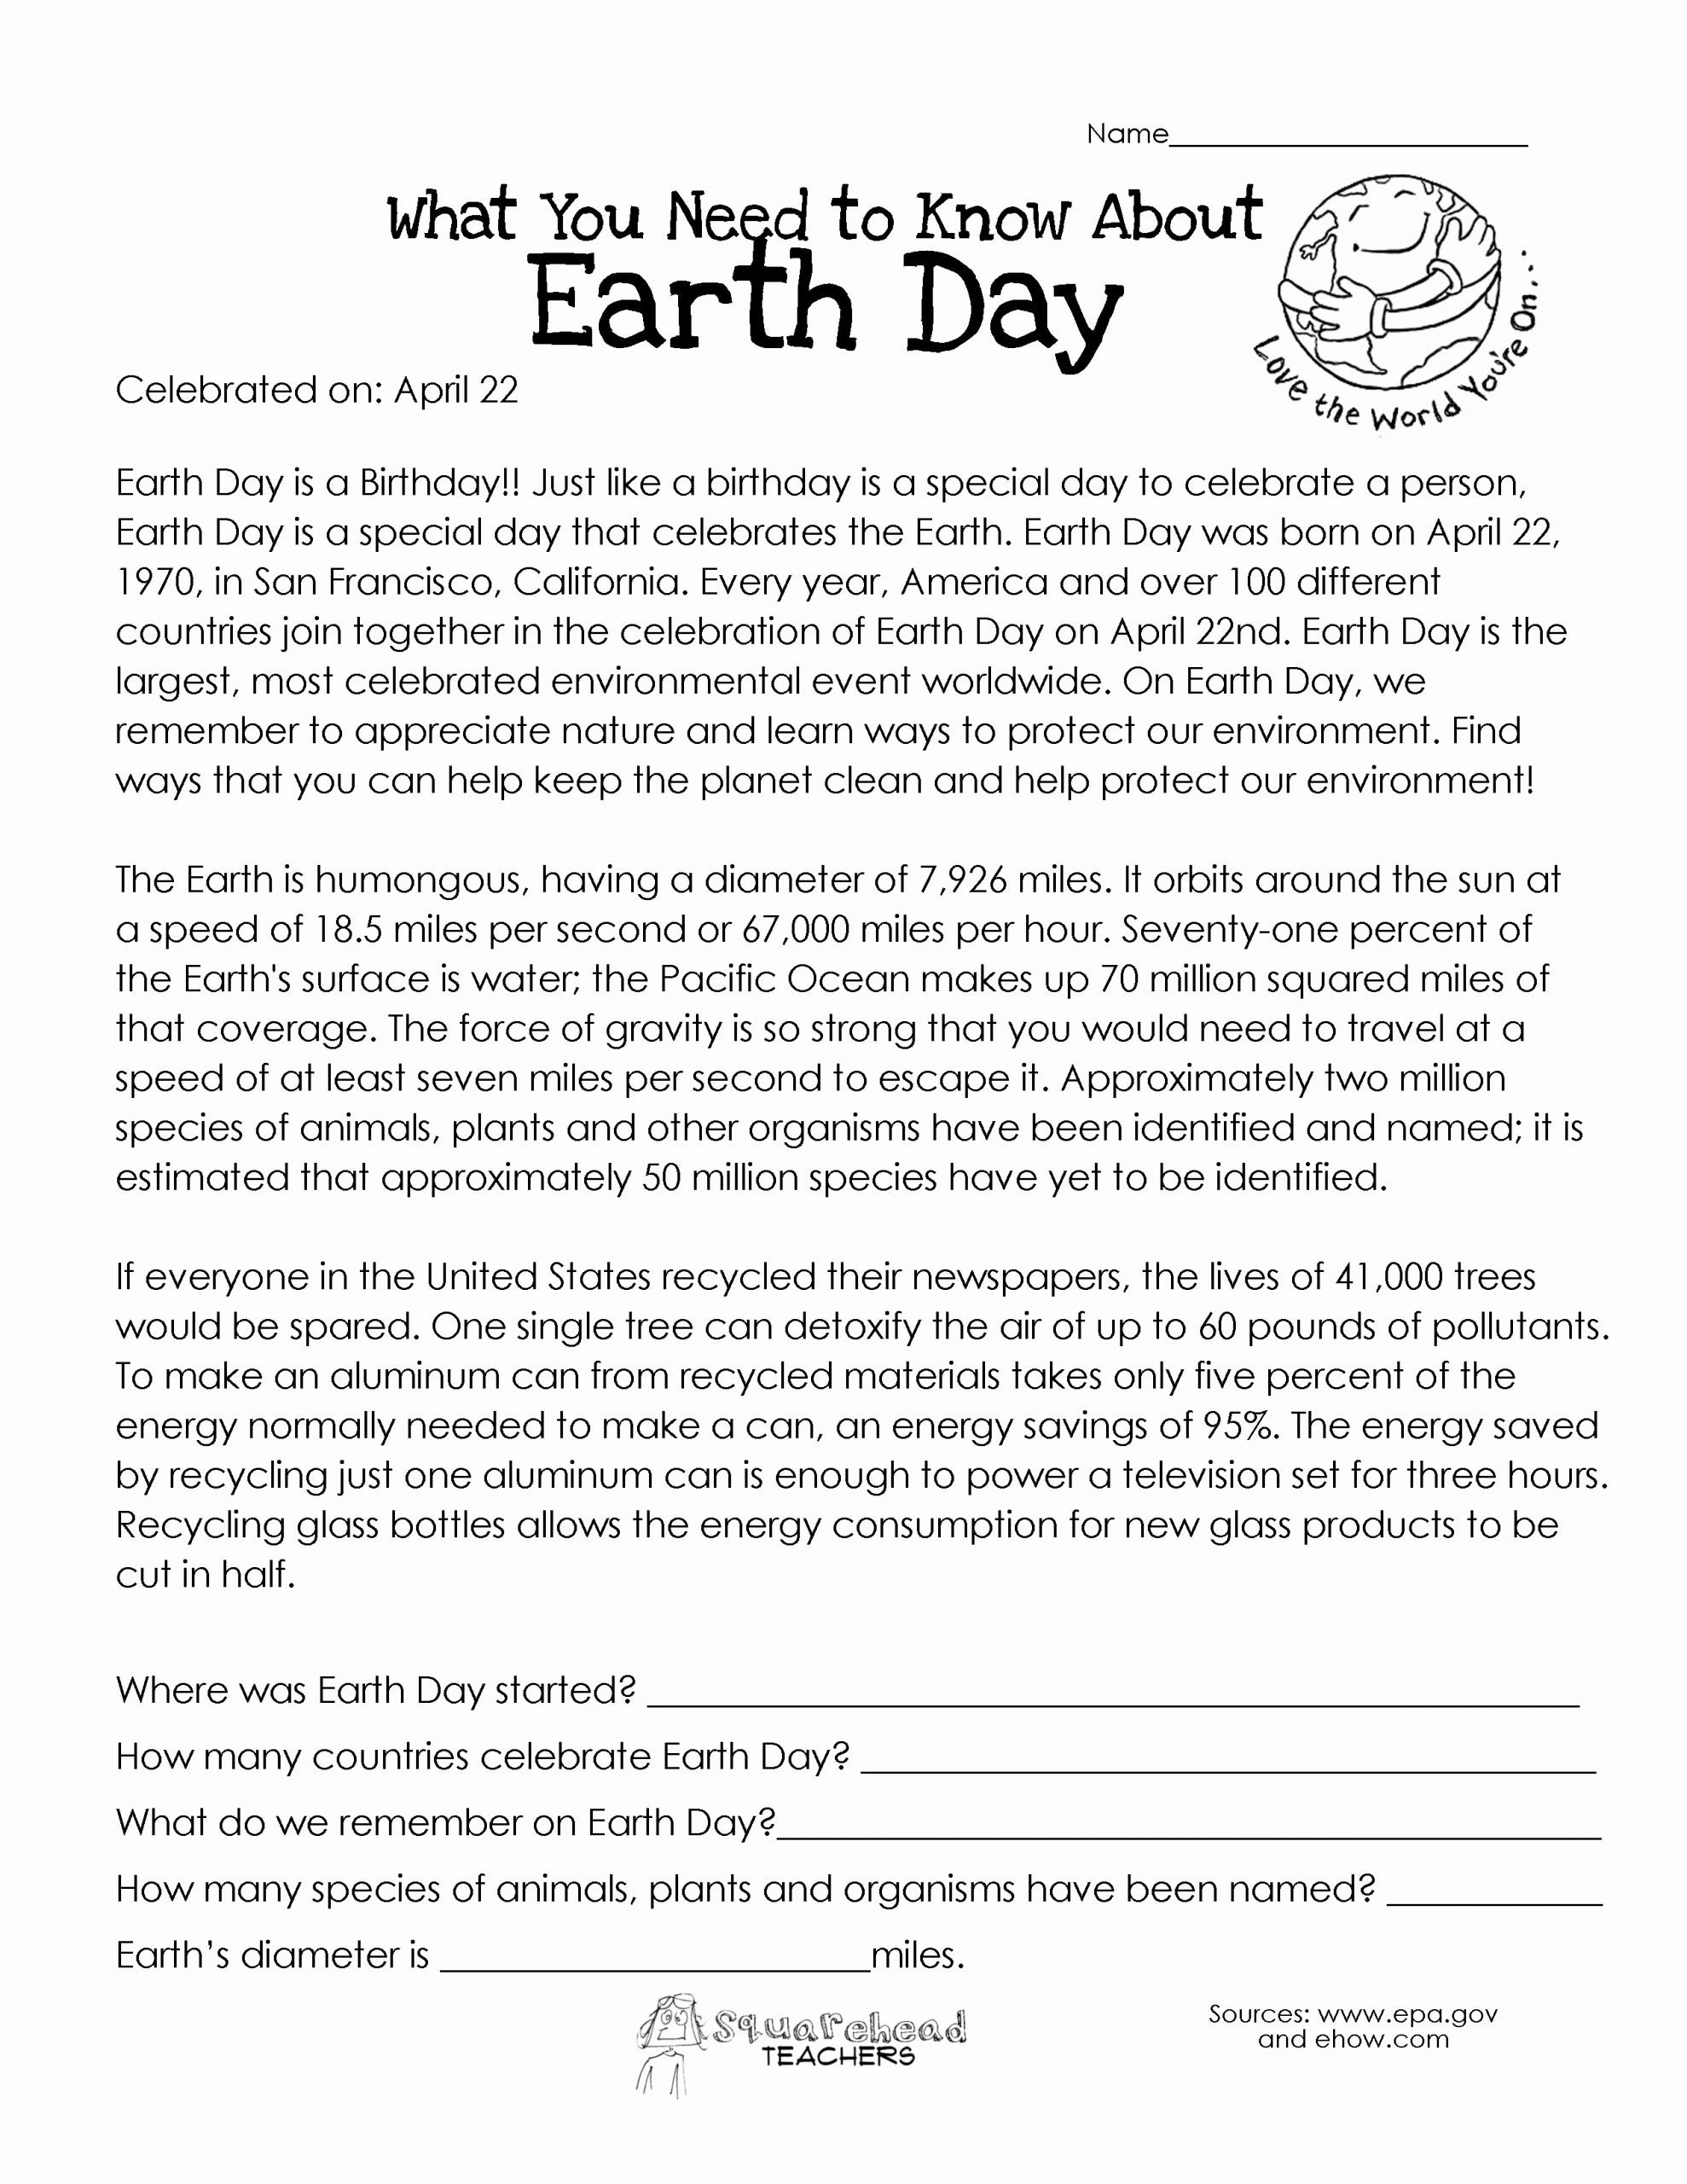 Earth Day Reading Comprehension Worksheets Fresh Free Earth Day Worksheet for Kids This is A Great Seat Work